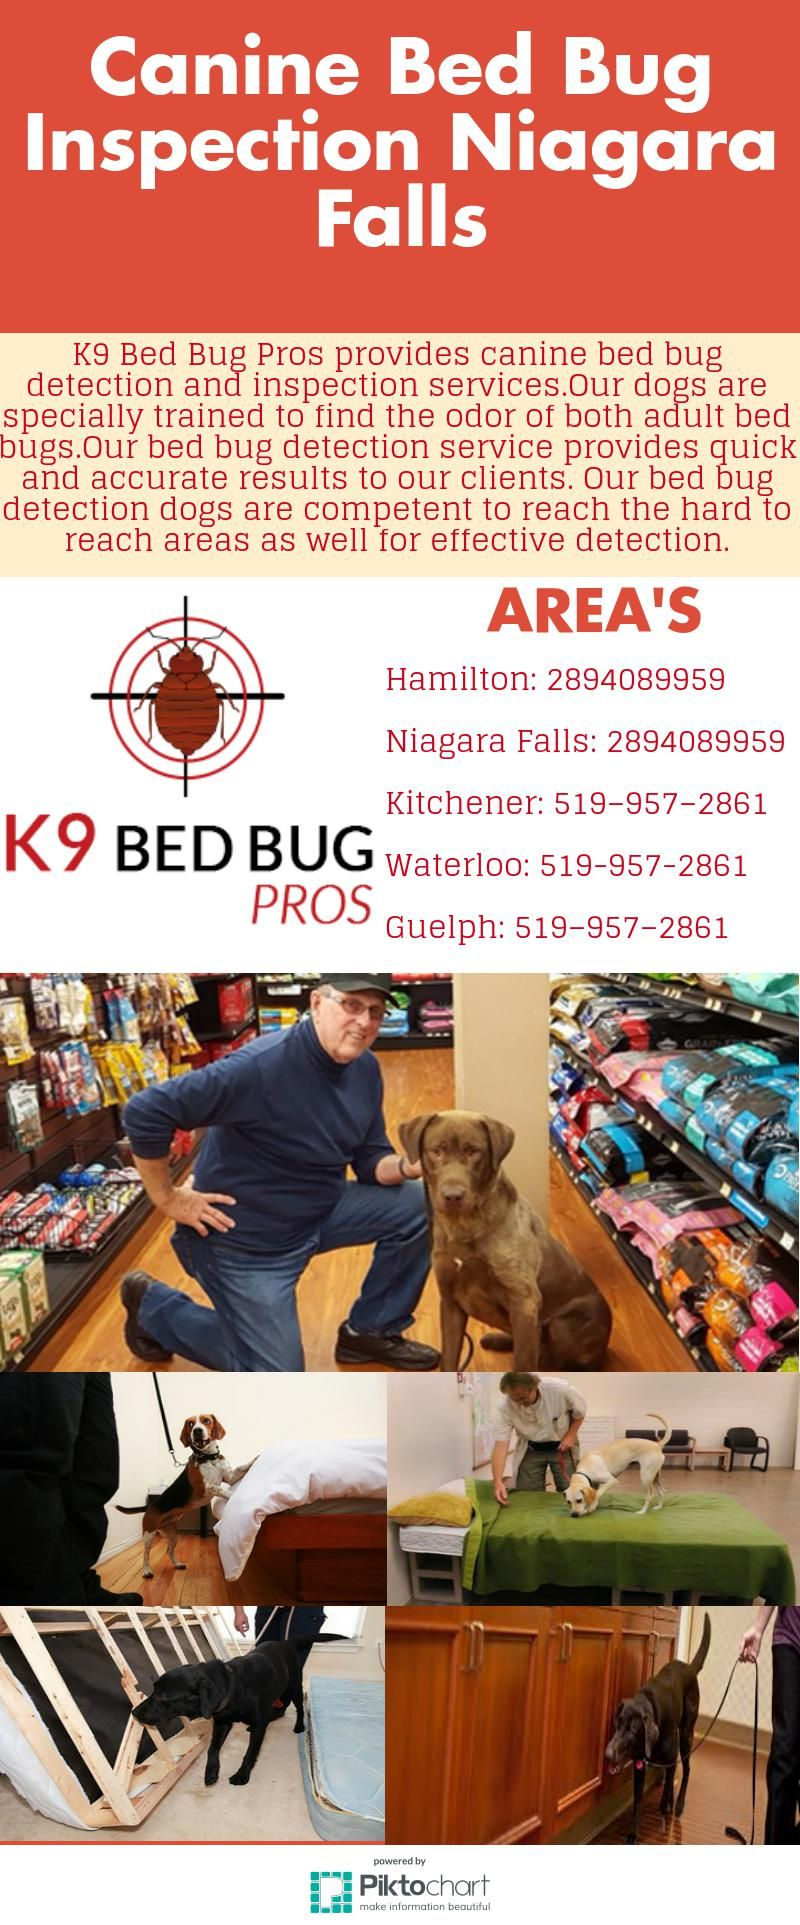 K9 Bed Bug Pros provides canine bed bug detection and